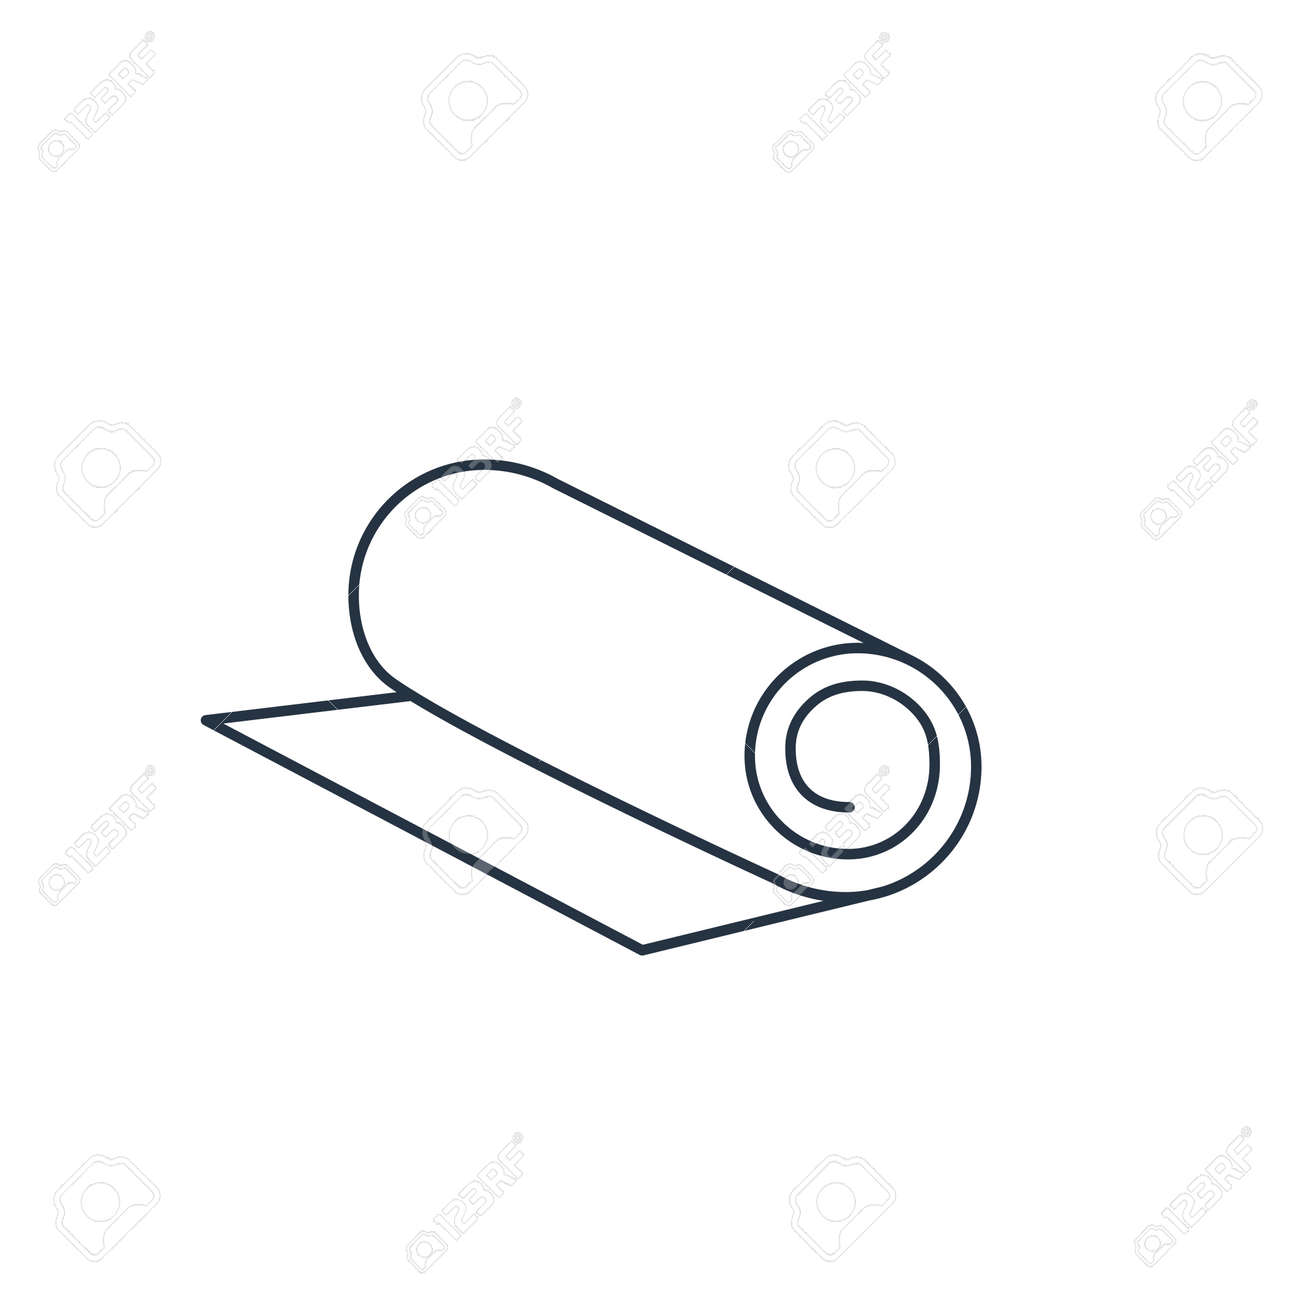 Yoga Mat Icon Vector Illustration Royalty Free Cliparts Vectors And Stock Illustration Image 46250232